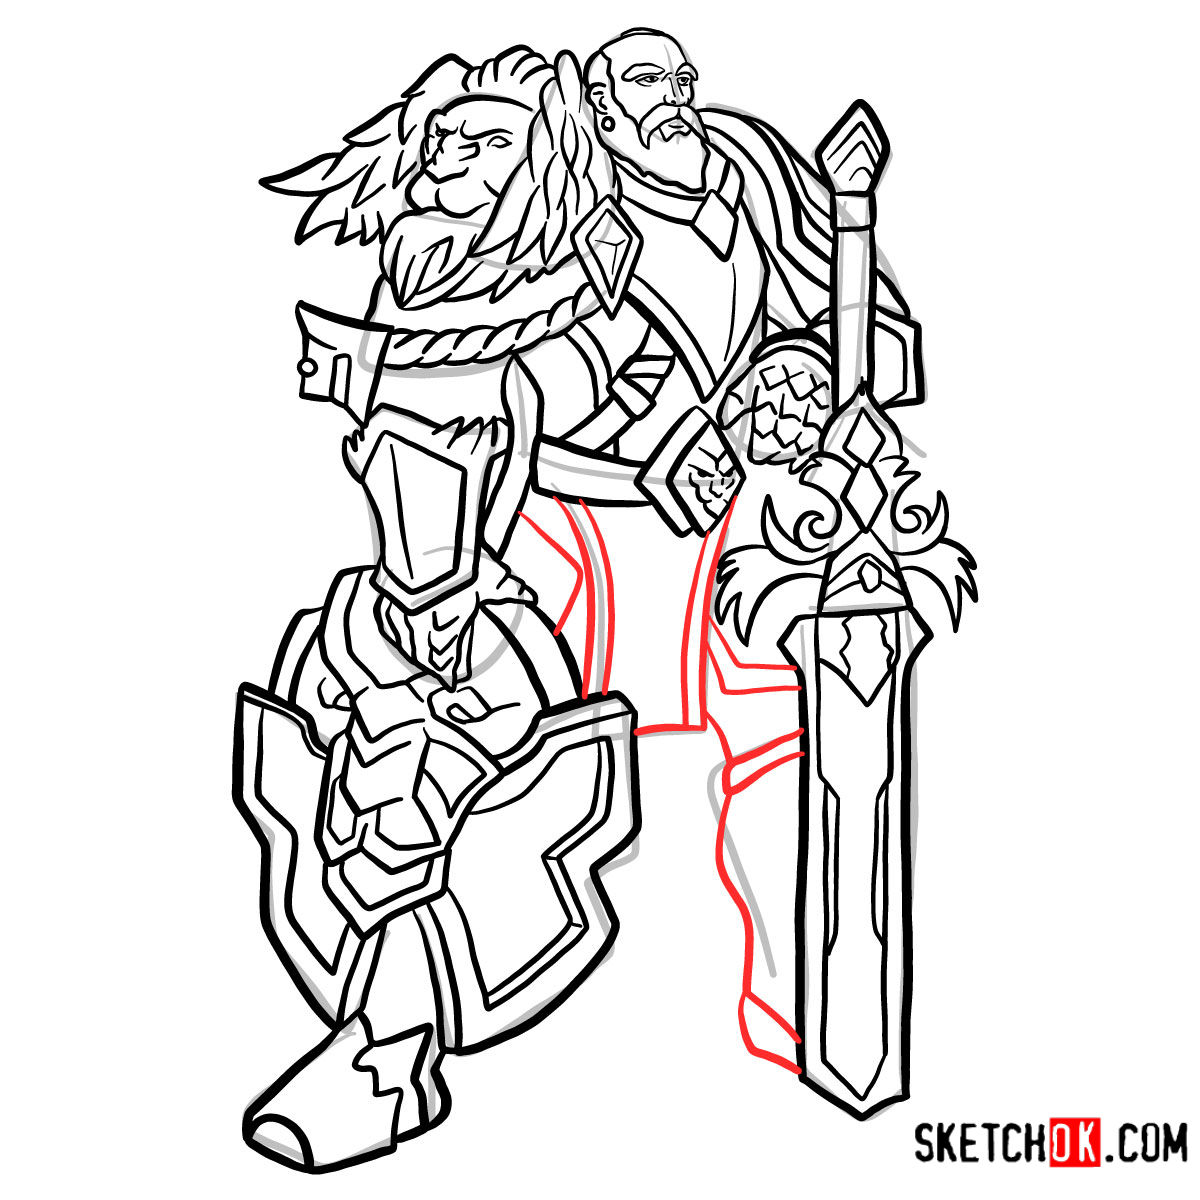 How to draw Lord Anduin Lothar | World of Warcraft - step 16